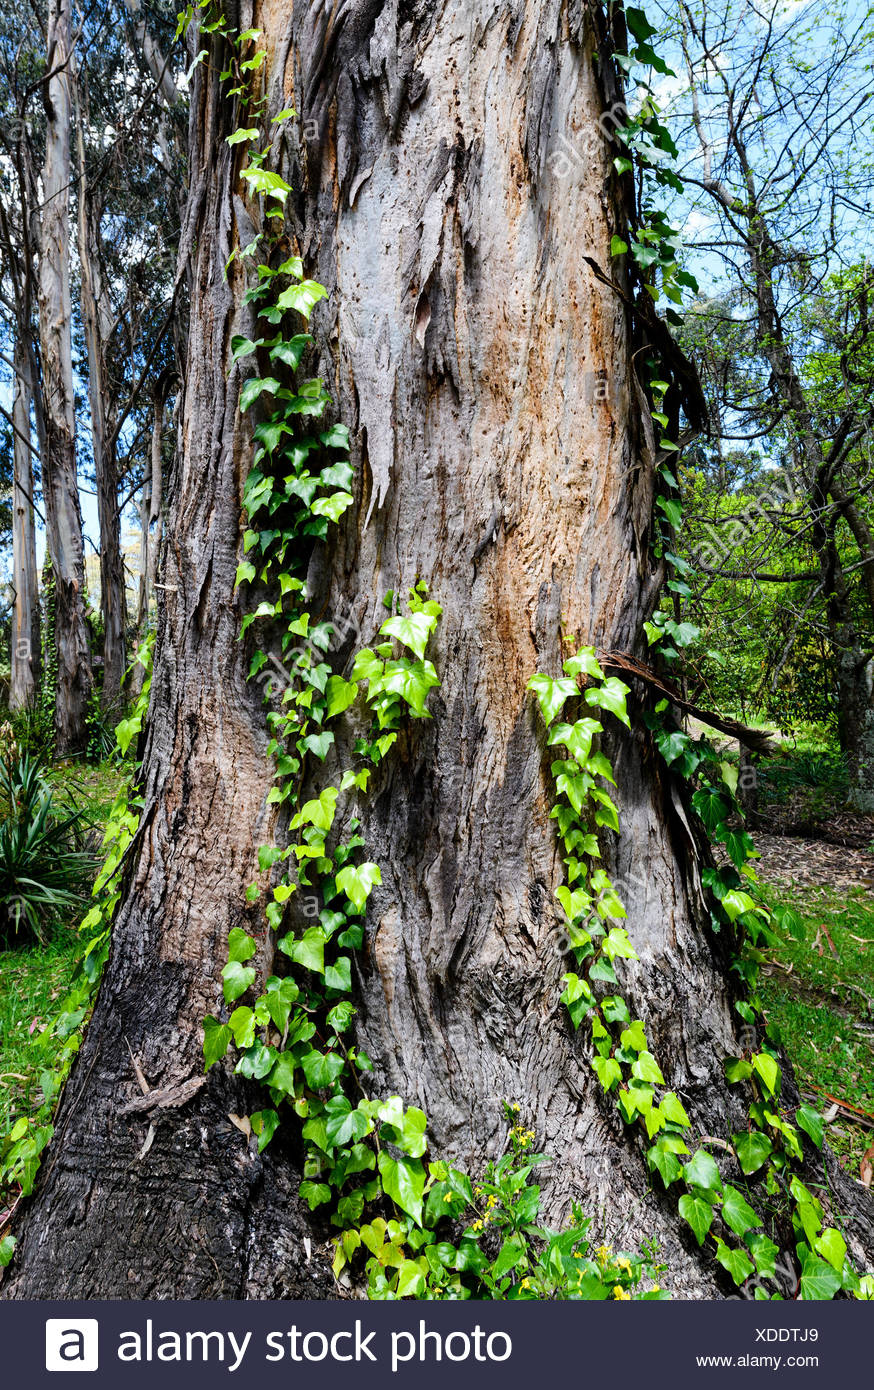 Common Ivy vine growing up a eucalyptus tree trunk. - Stock Image